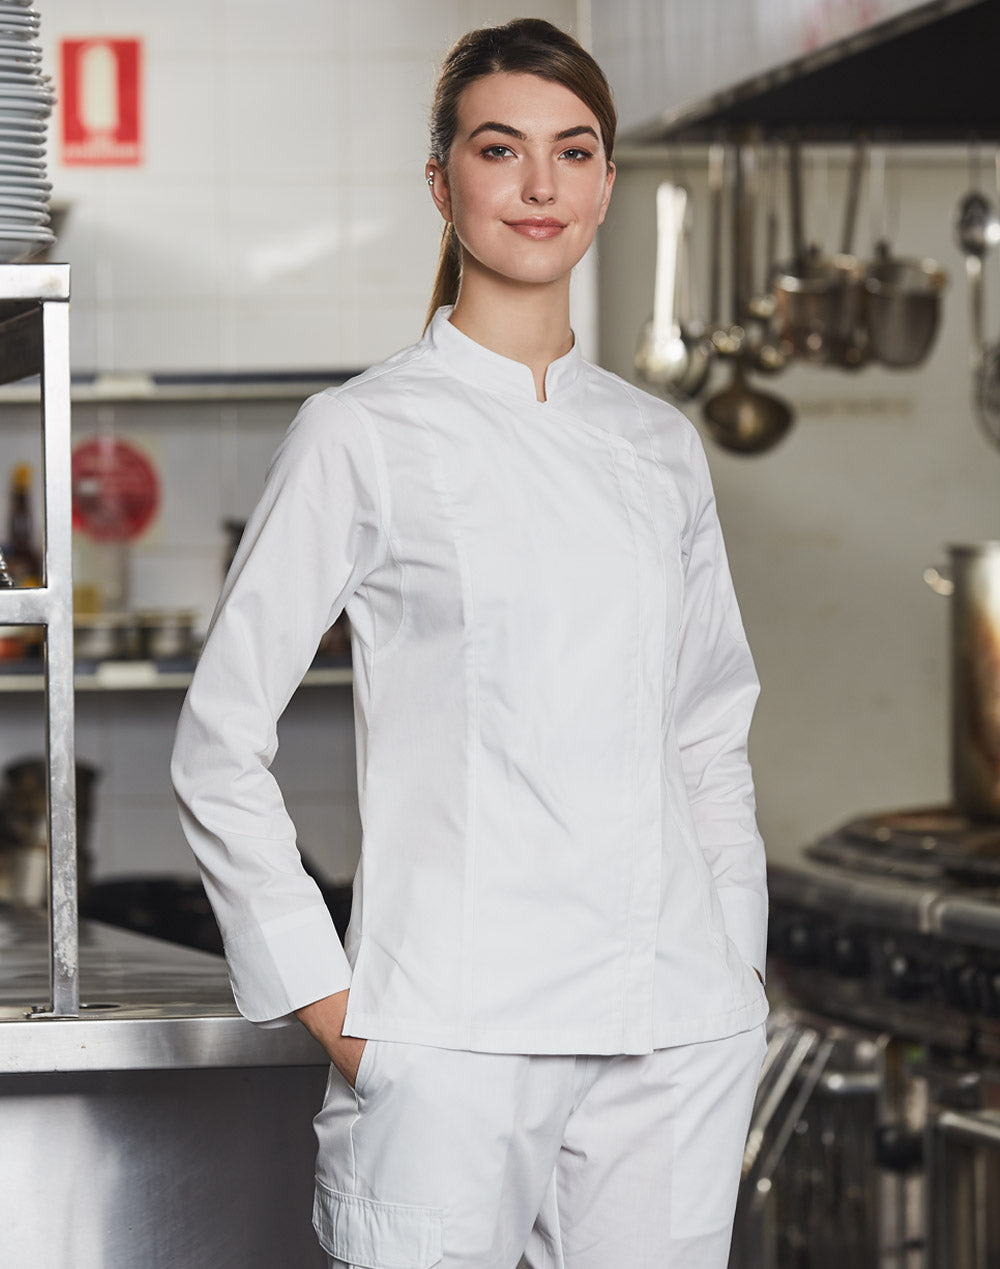 [CJ04] Ladies' Functinal Chef Jacket